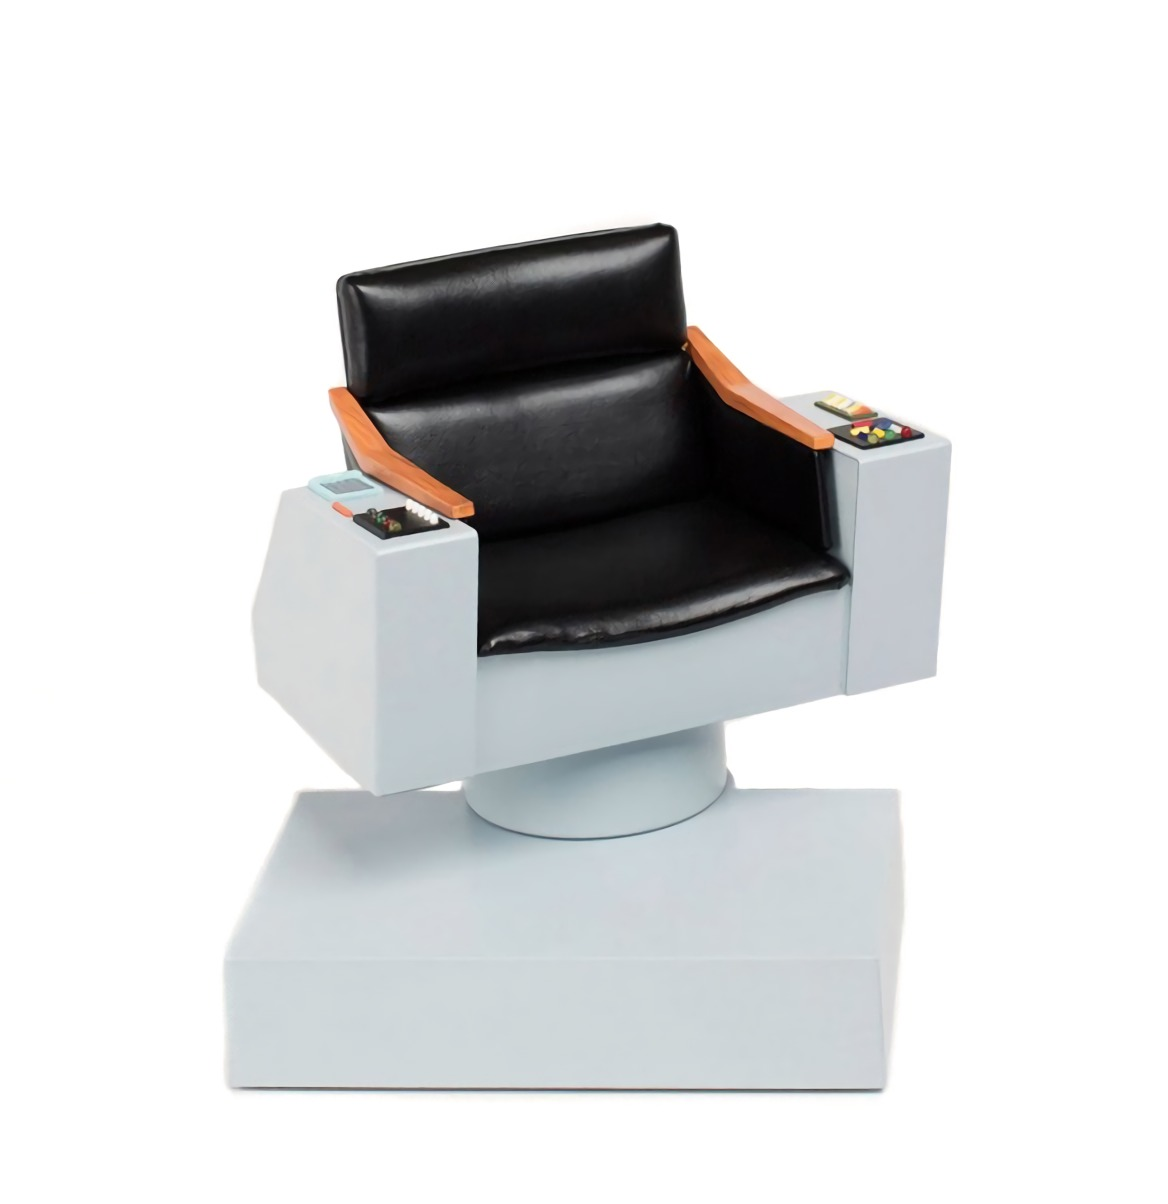 Star Trek: The Original Series Captain's Chair 1 6 Scale FX Replica by